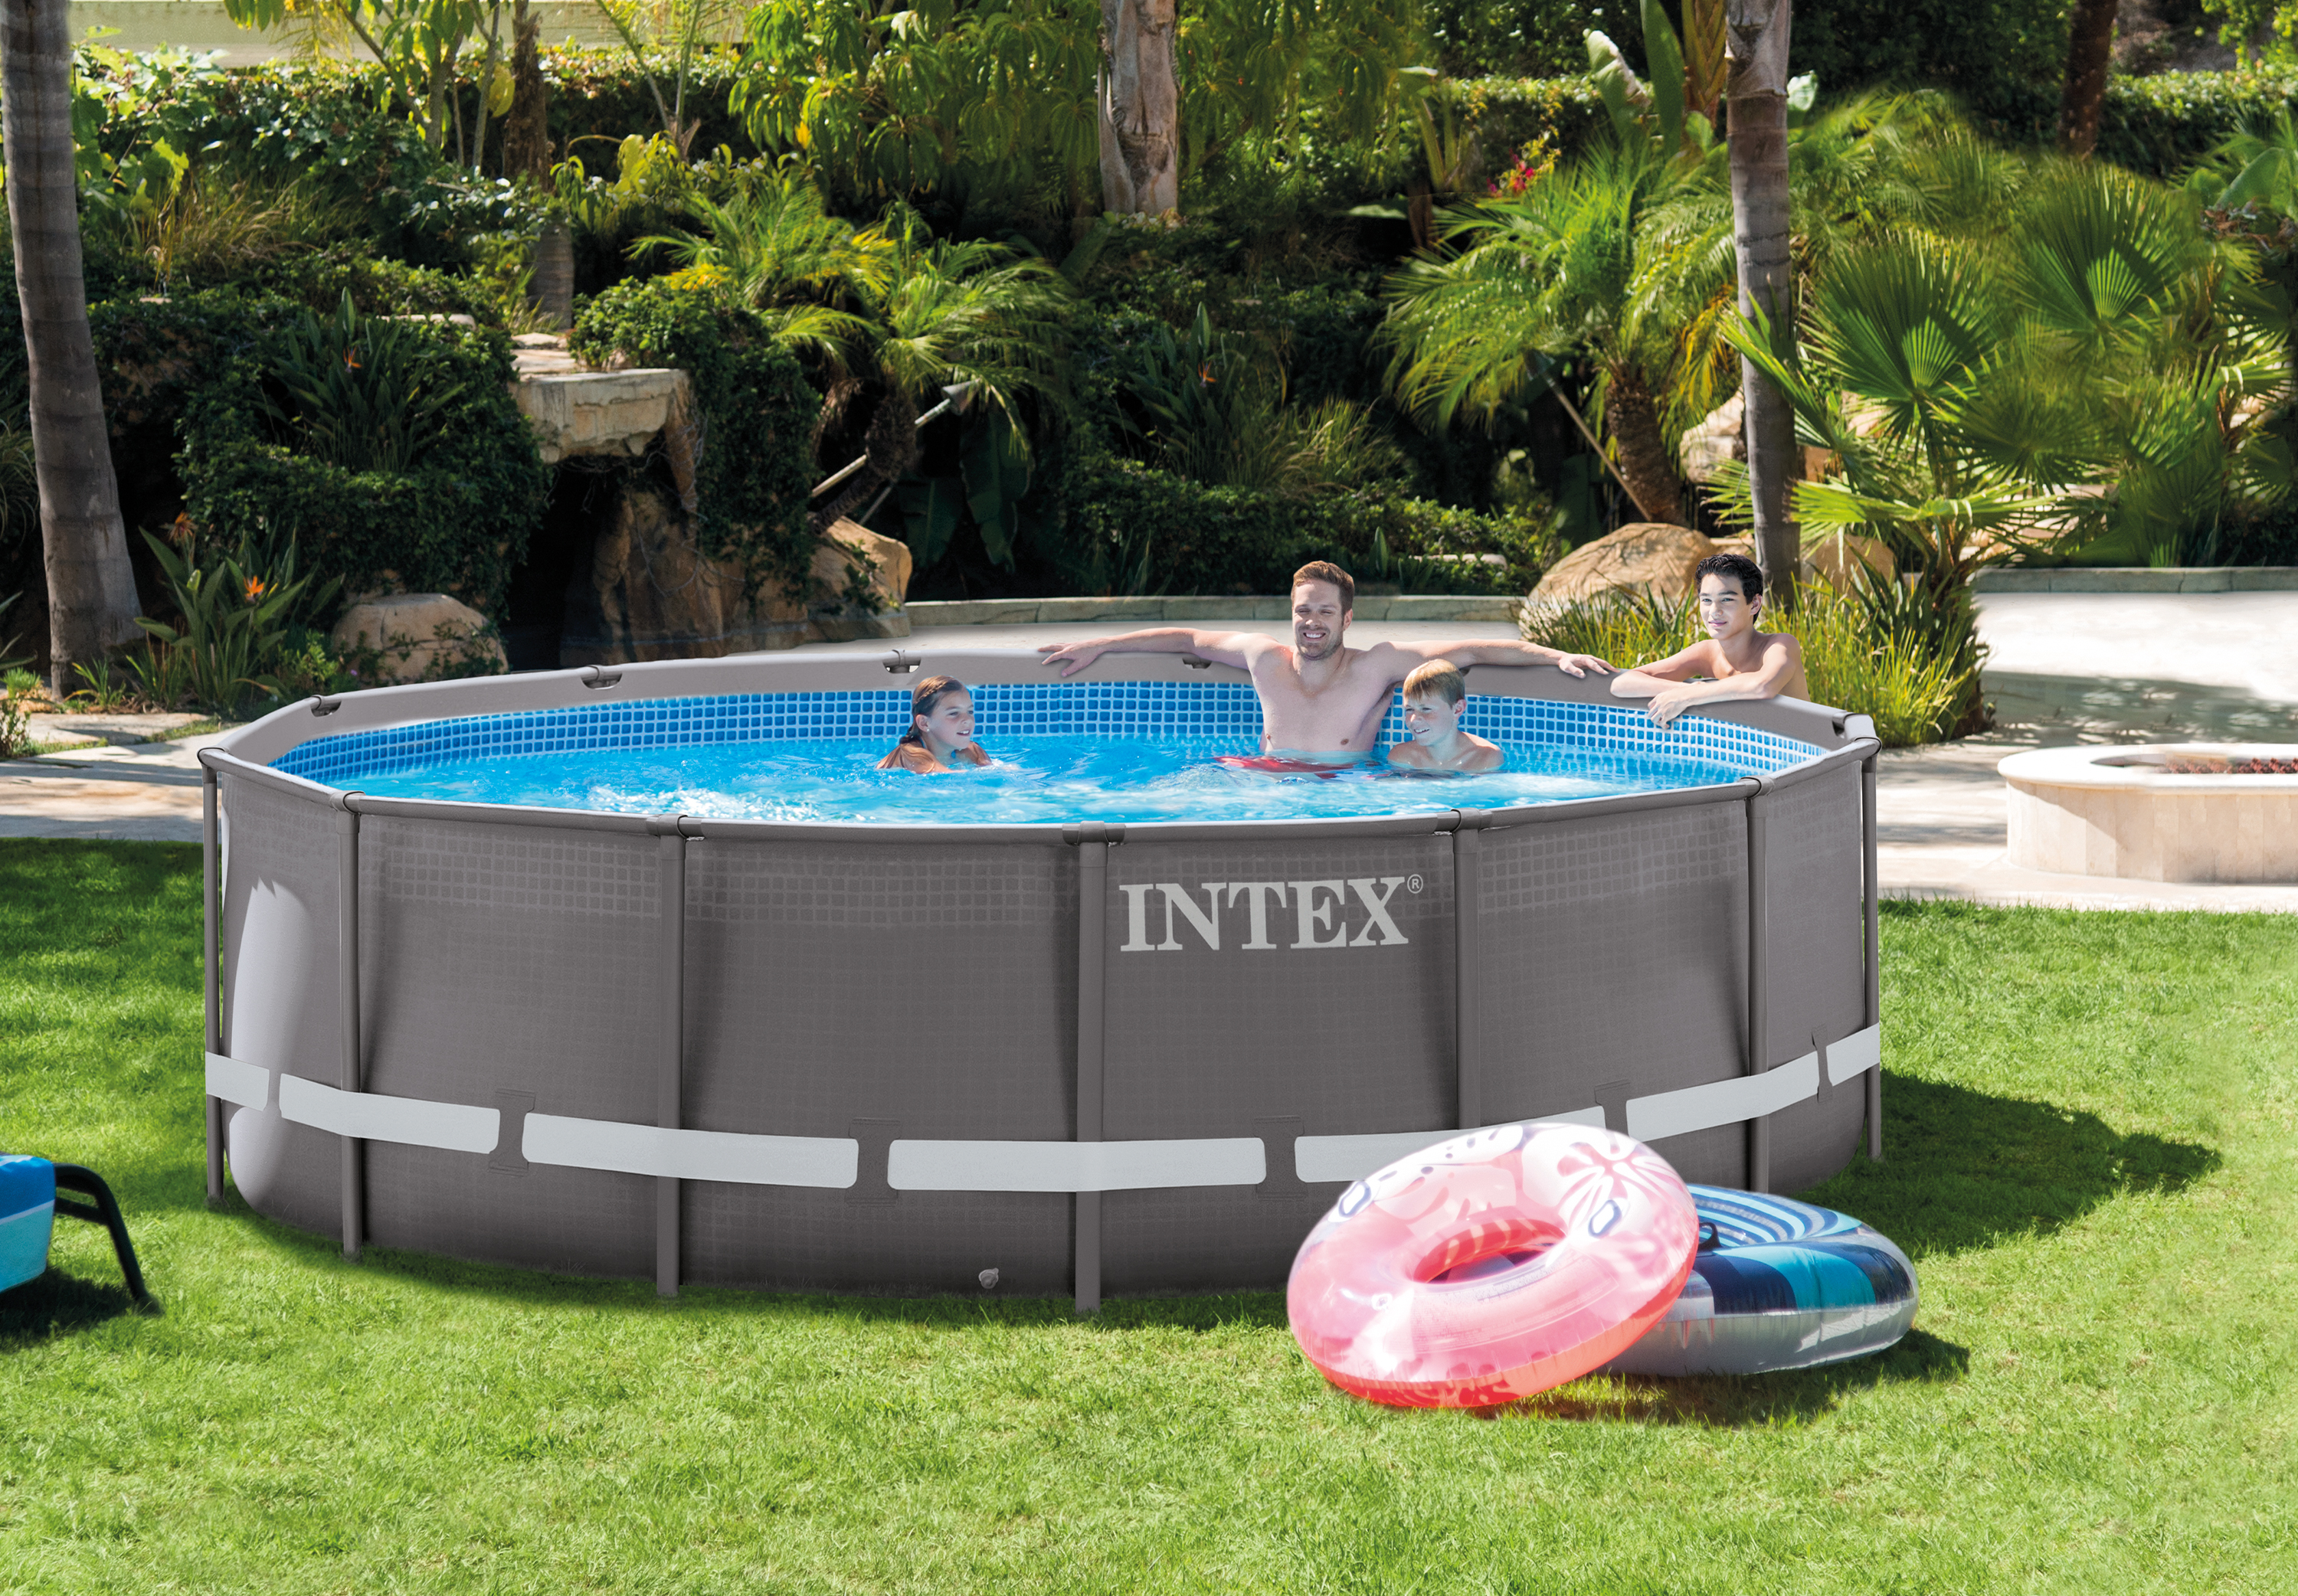 Tolle Intex 14x42 Ultra Frame Pool Bilder - Benutzerdefinierte ...